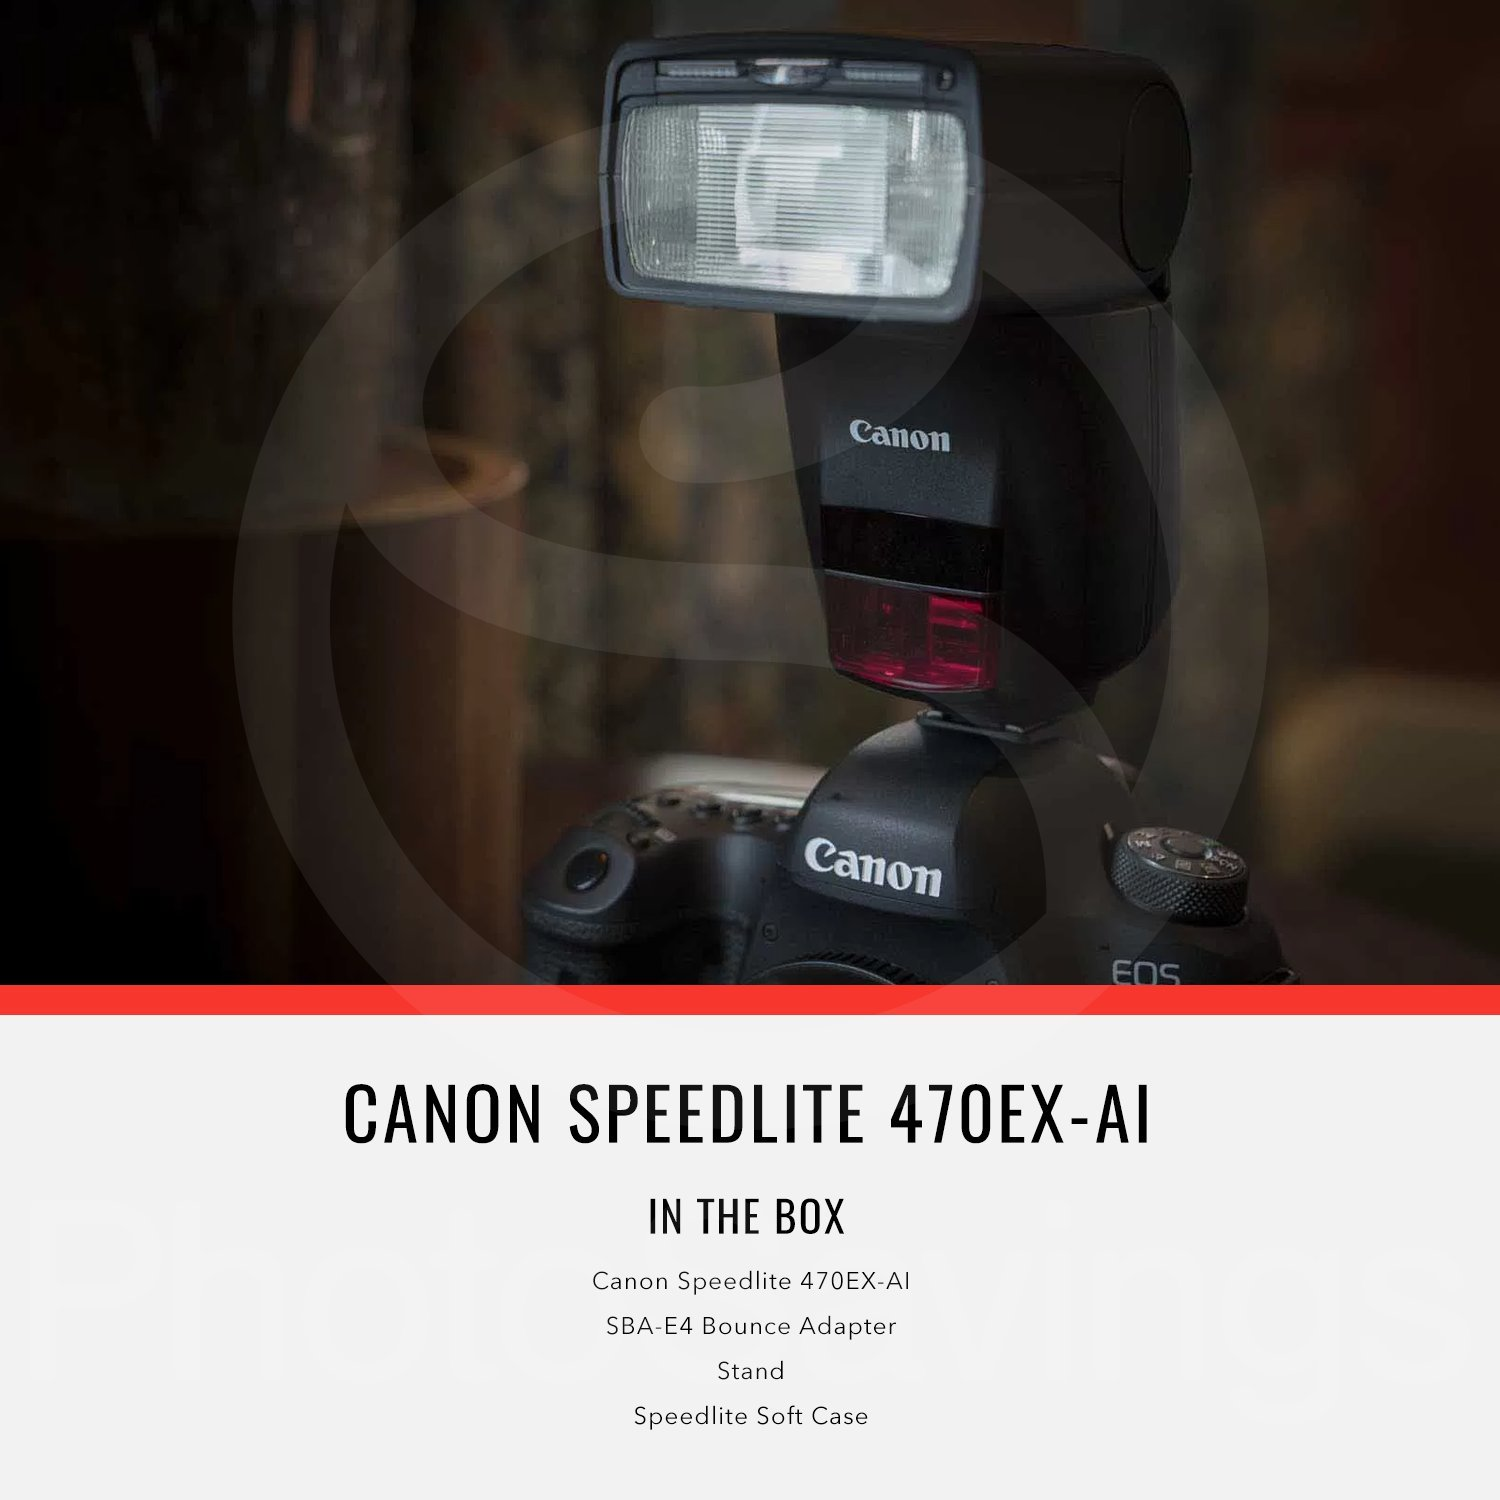 Canon Speedlite 470EX-AI Flash with Diffuser, Batteries & Charger Kit, Xpix Cleaning Accessories, and Basic Photo Bundle by Canon (Image #3)